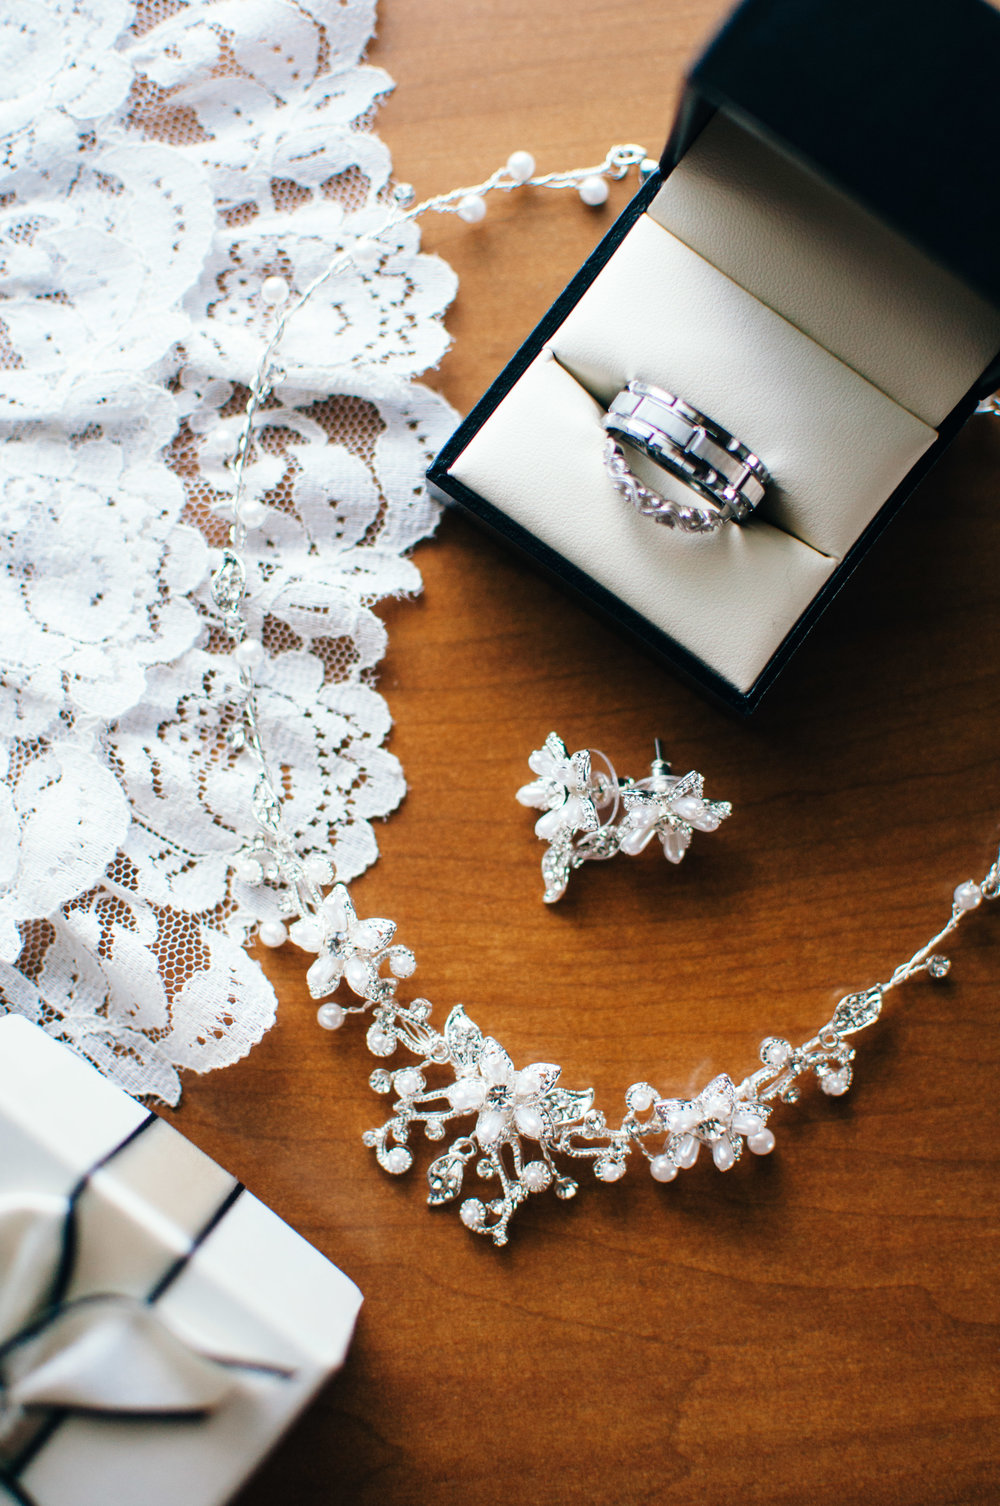 Wedding details like wire necklace with pearls, pearl and silver flower earrings, and family ring heirlooms for luck on the wedding day